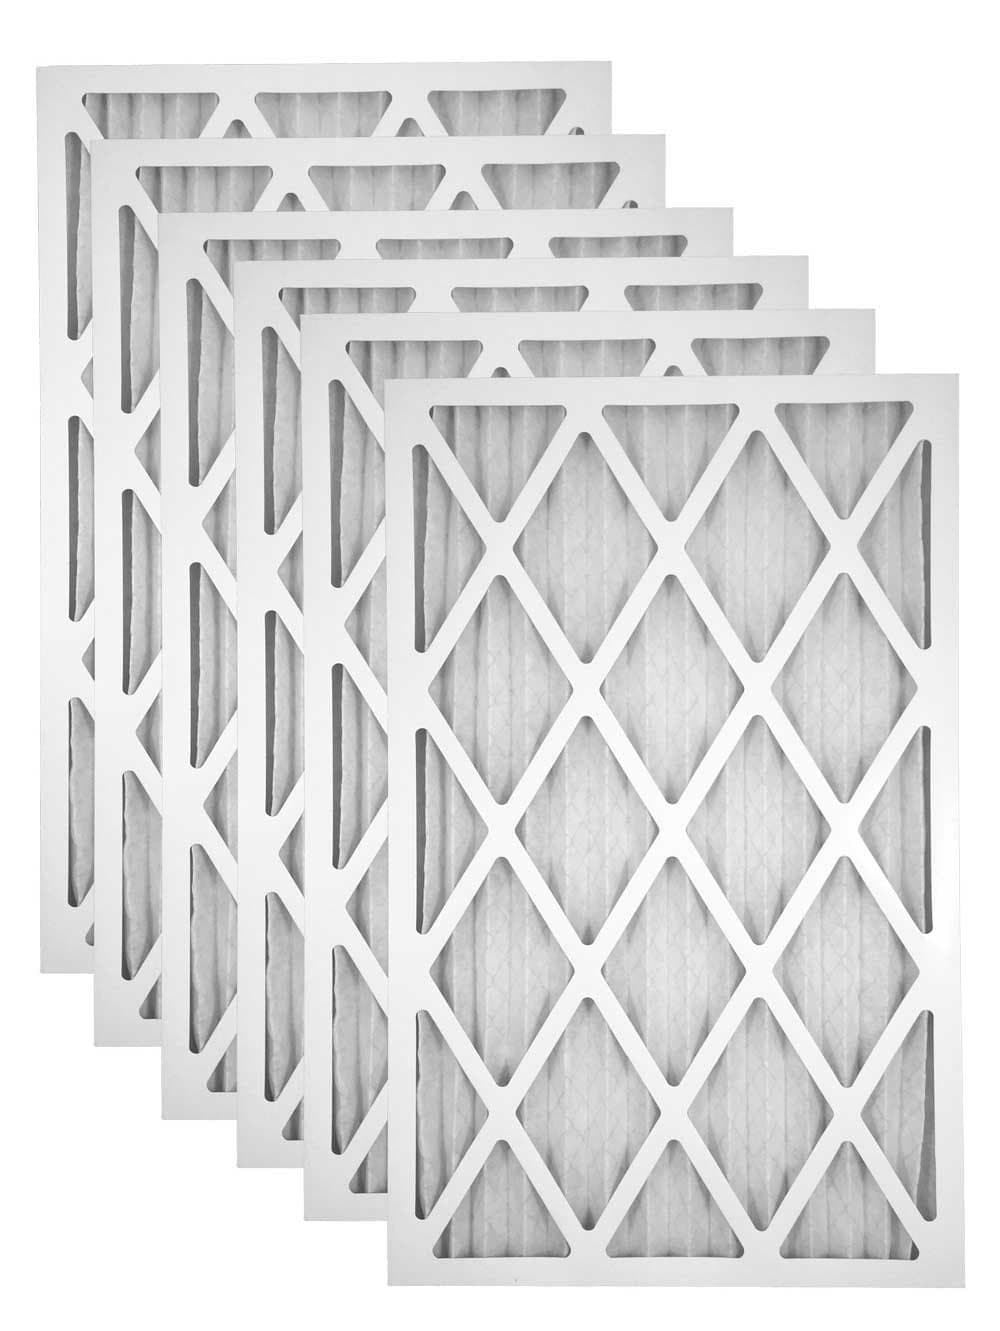 20x24x1 Merv 13 Pleated AC Furnace Filter - Case of 6